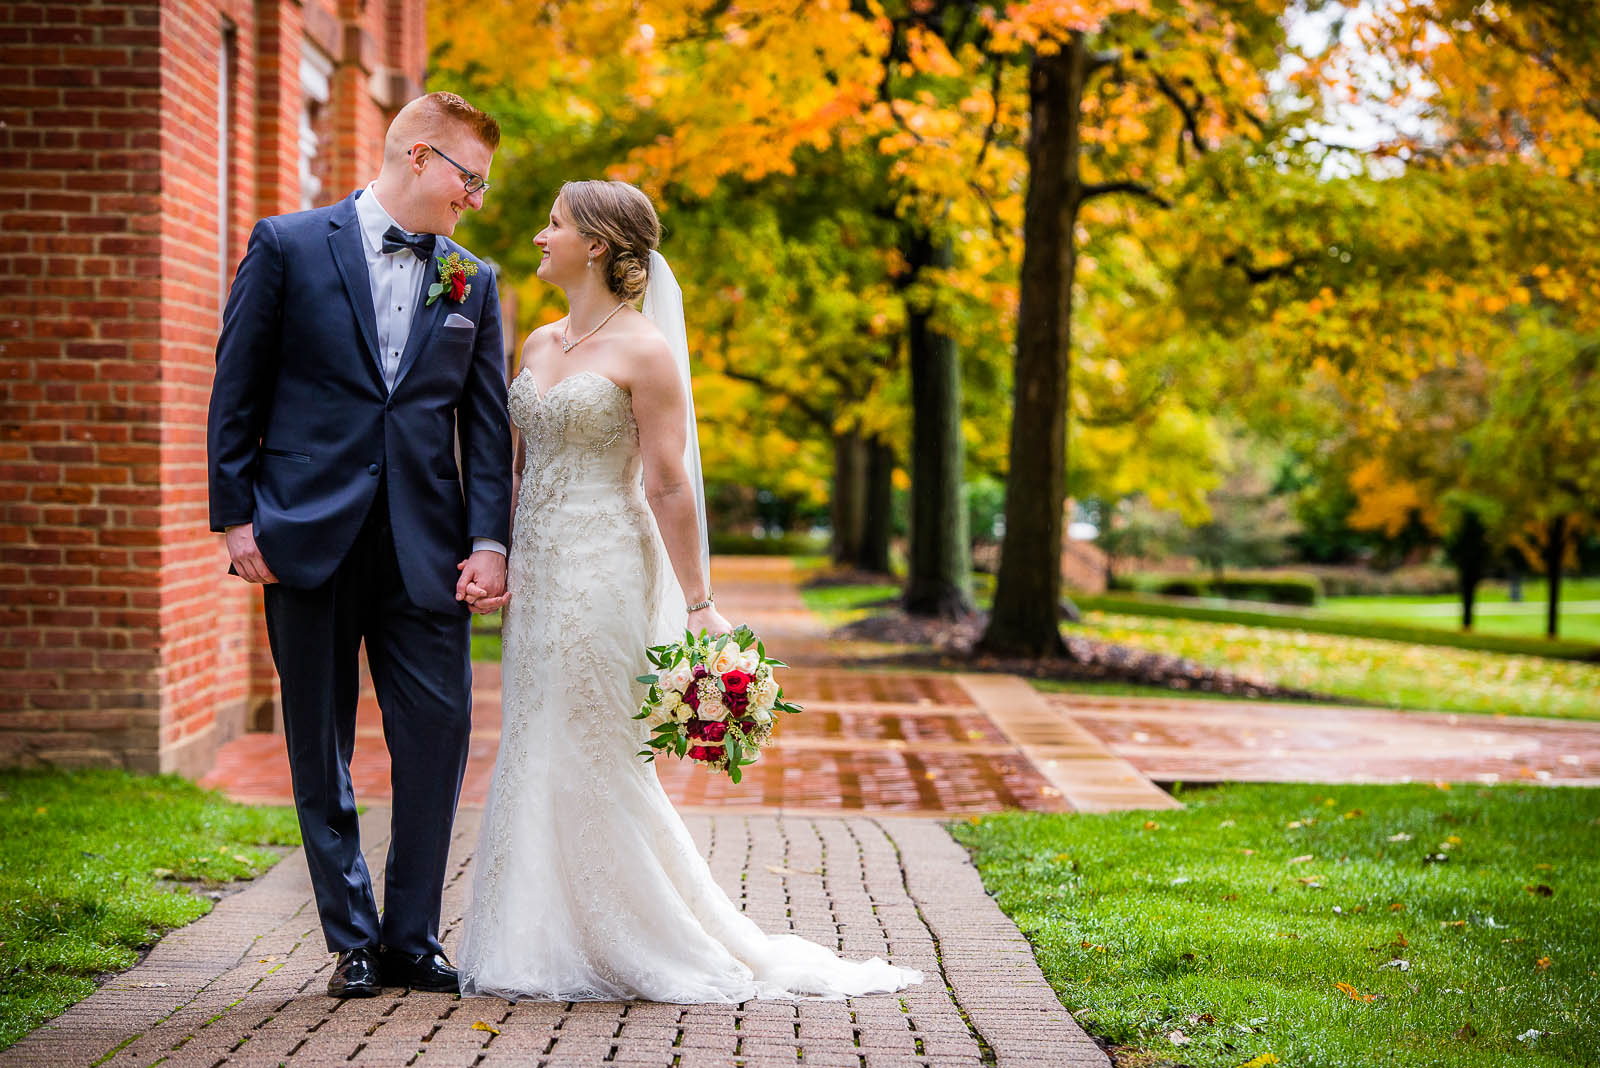 Eric_and_Christy_Photography_Blog_Wedding_Erica_Mike-37